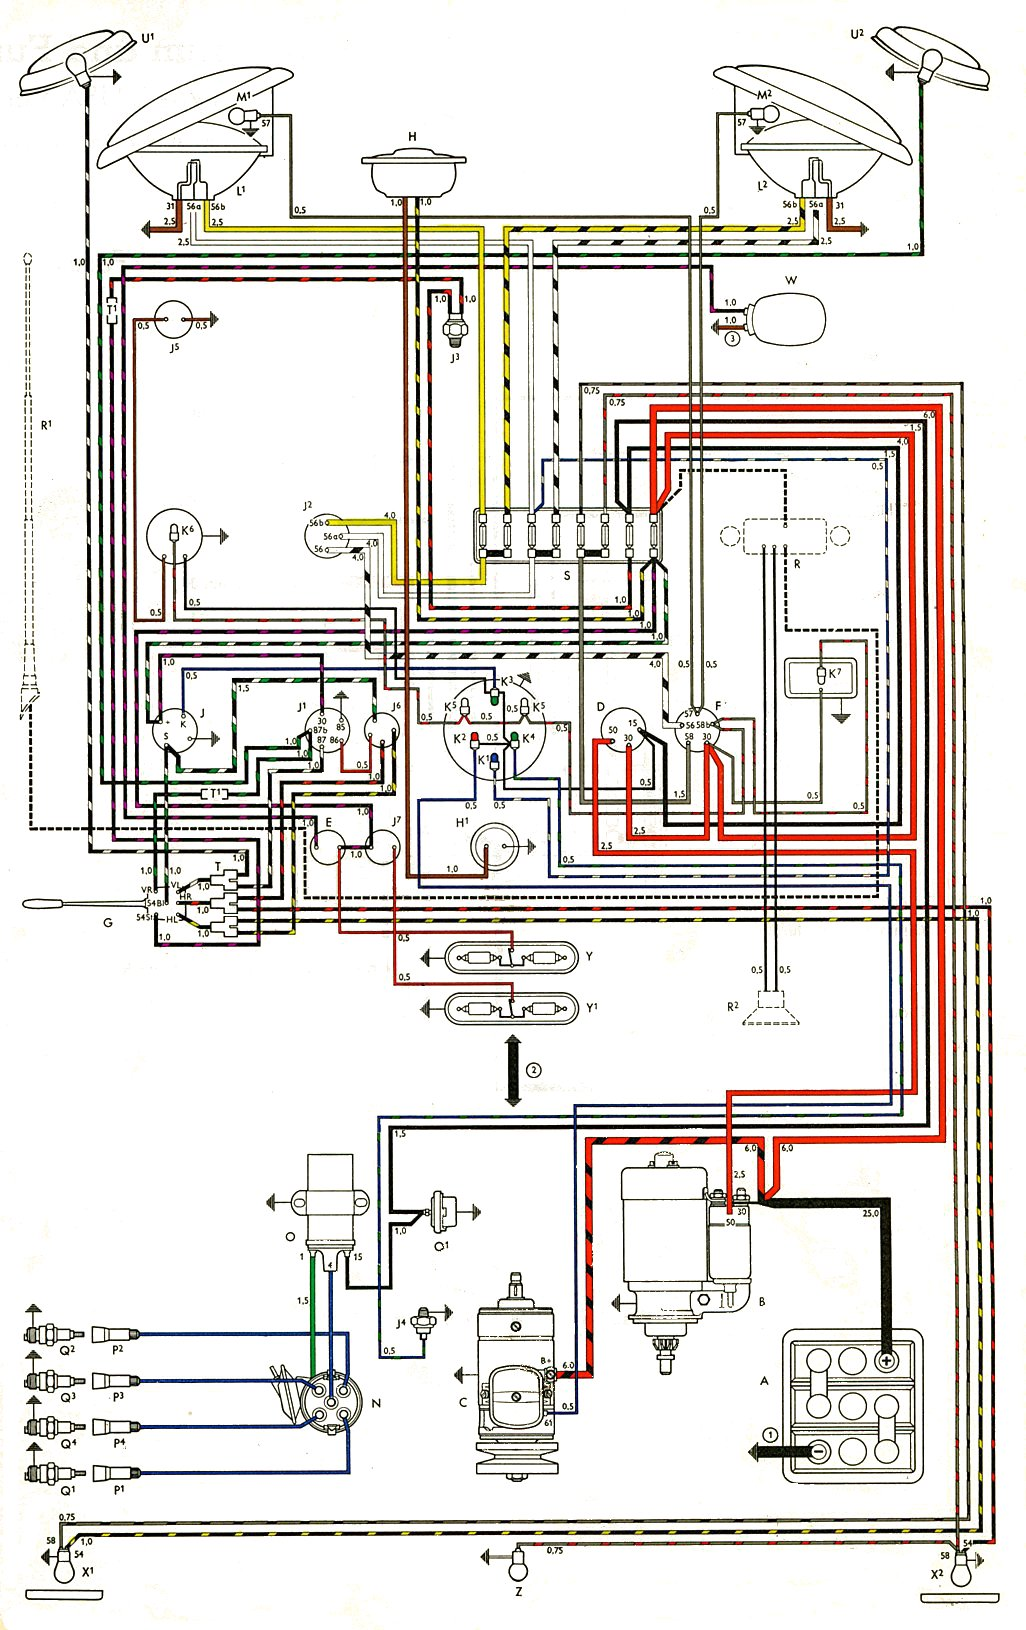 1965 Vw Bus Wiring Diagram Free Picture - 15.dce.capecoral ...  Vw Bug Wiring Diagrams on 1972 vw beetle fuse box diagram, 1966 chevrolet impala wiring diagram, 12 volt switch wiring diagram, 1966 chevy impala wiring diagram, vw kit car wiring diagram, 1966 ford wiring diagram, 1965 vw wiring diagram, 1966 porsche wiring diagram, 67 vw wiring diagram, 1972 vw beetle engine diagram, 69 beetle wiring diagram, vw engine wiring diagram, 1966 mustang wiring diagram, 1968 vw beetle engine diagram, vw beetle wiring diagram, classic beetle wiring diagram, 1966 pontiac gto wiring diagram, 1966 corvette wiring diagram, 1974 super beetle wiring diagram, 1956 vw wiring diagram,